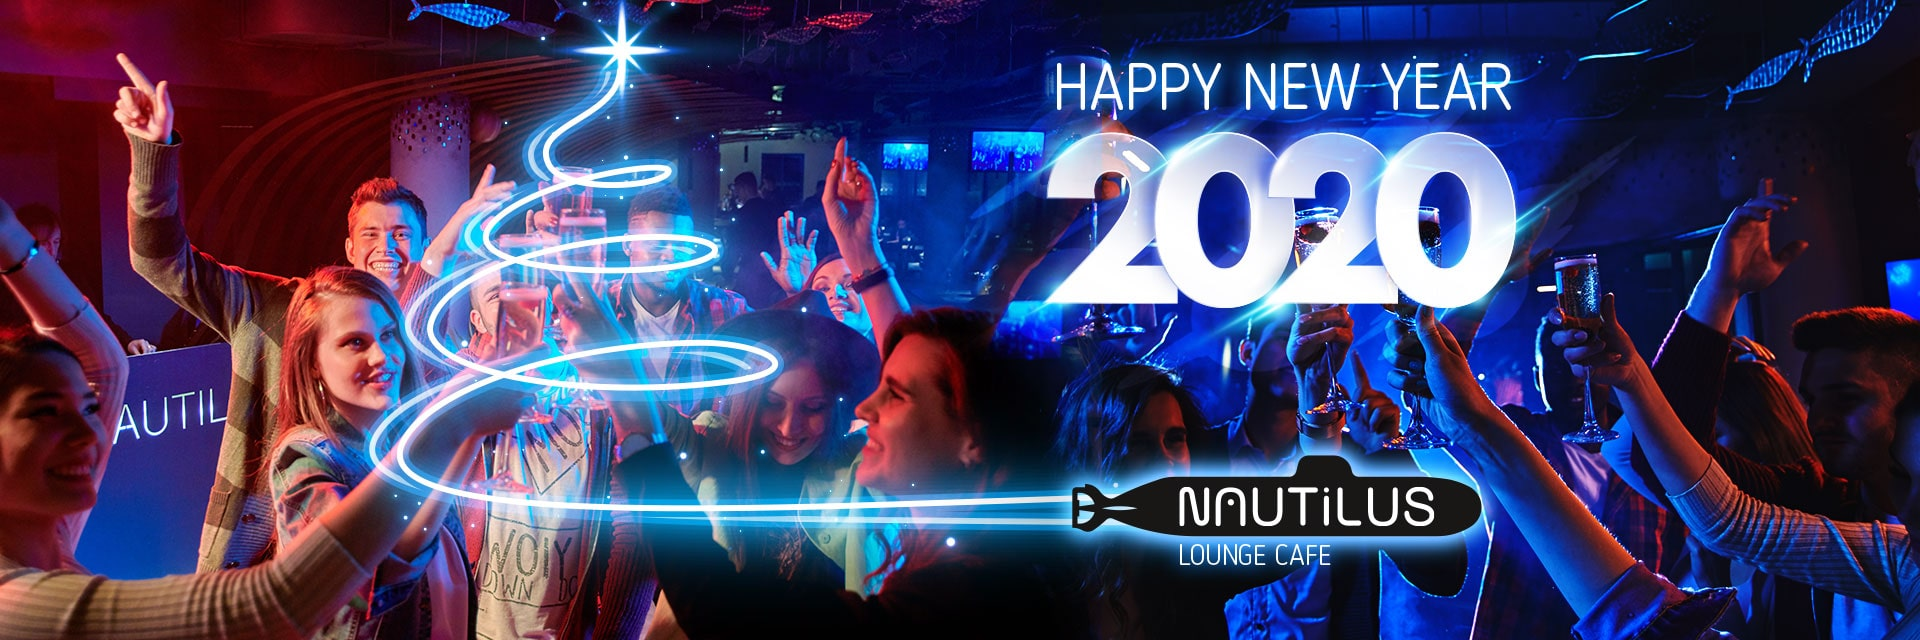 New Year Party 2020 at NAUTILUS Lounge Cafe in RESORT & SPA HOTEL NEMO, photo № 1